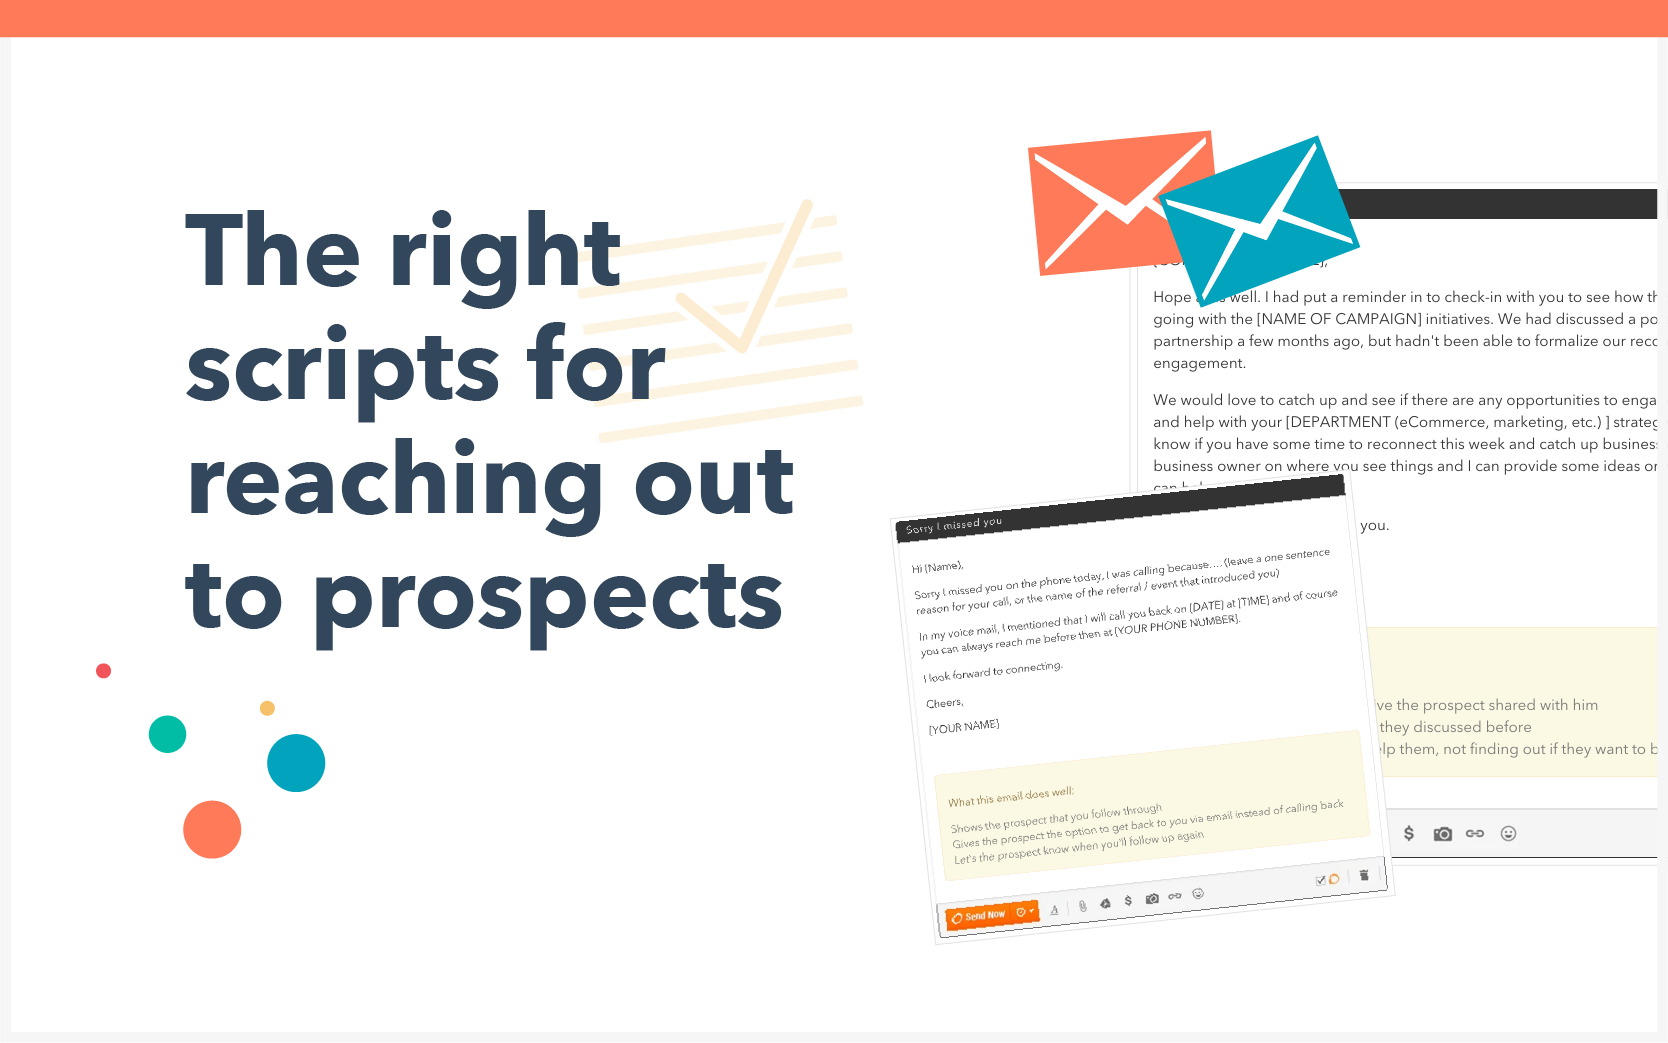 The right scripts for reaching out to prospects